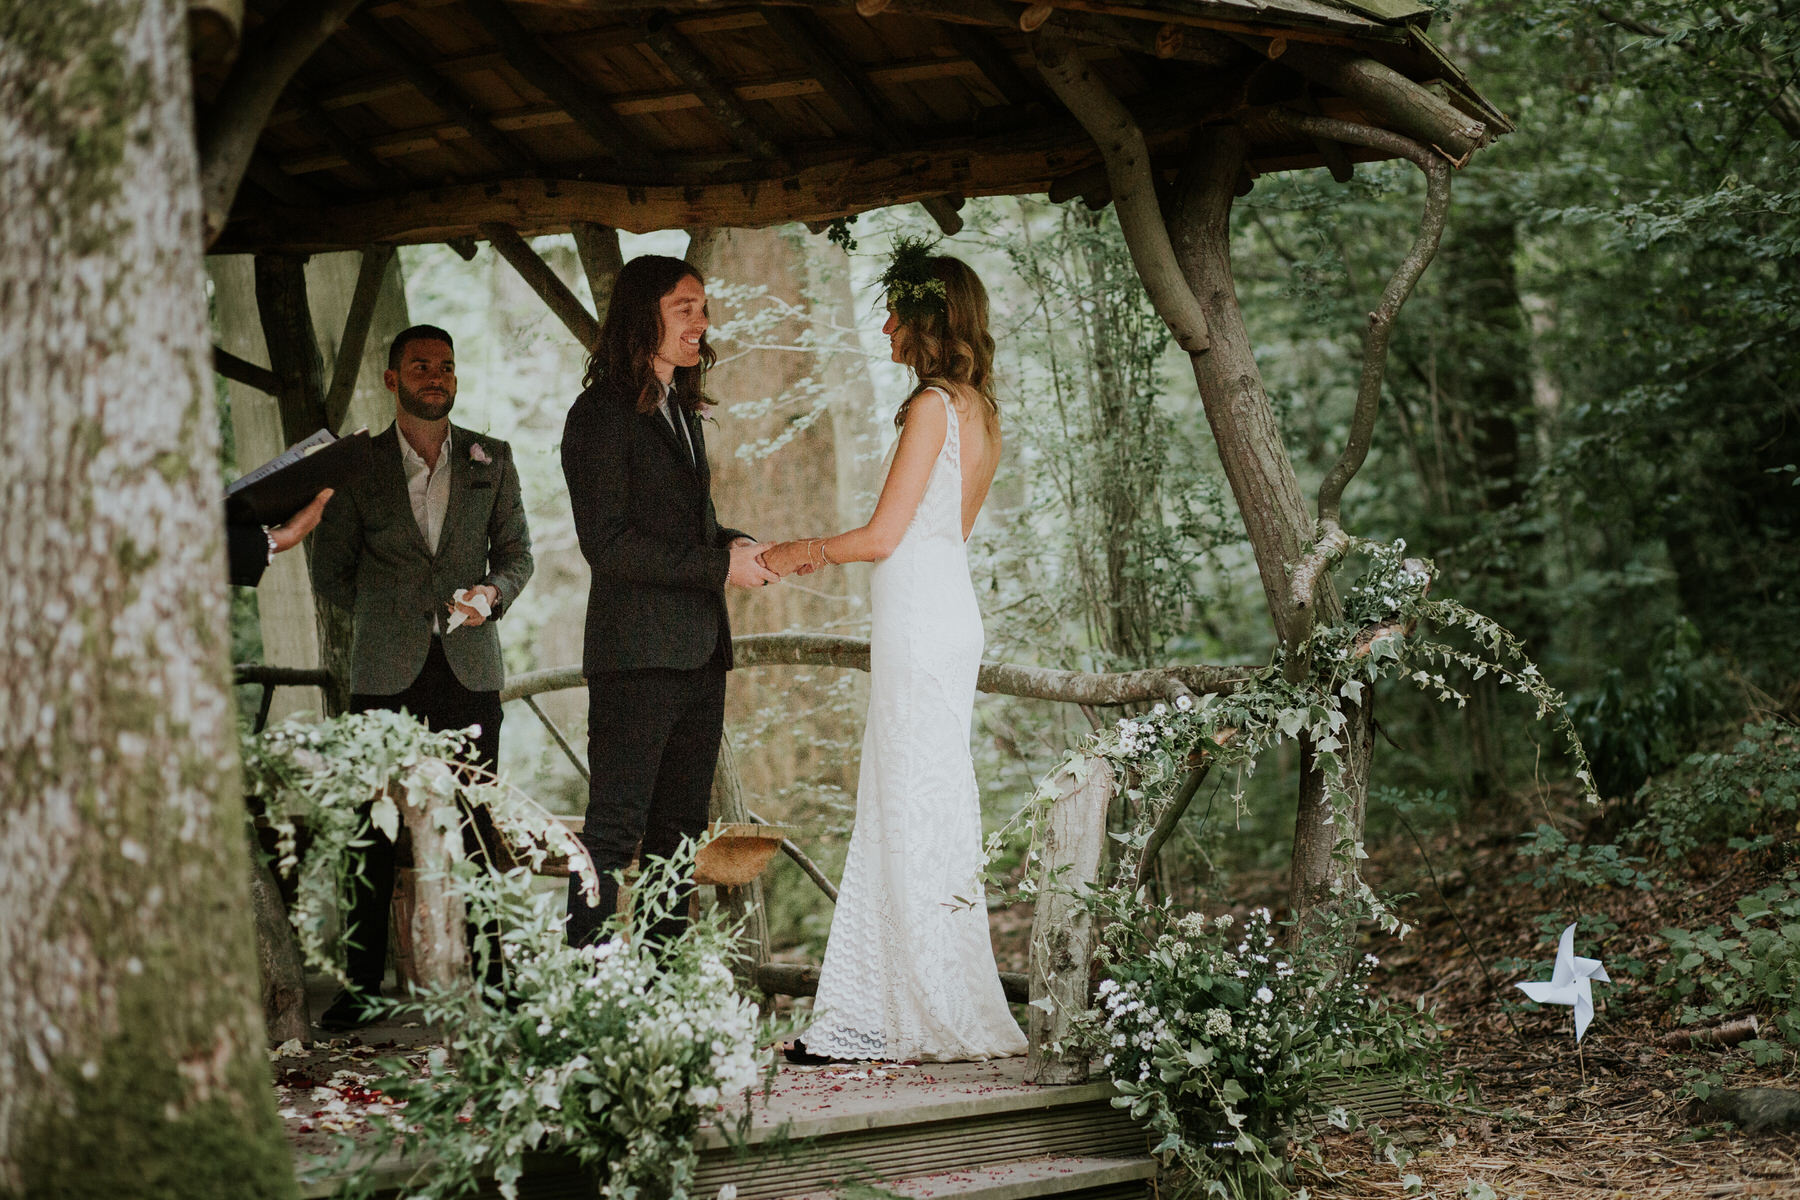 32 bride groom under wooden bower wedding ceremony Kent.jpg